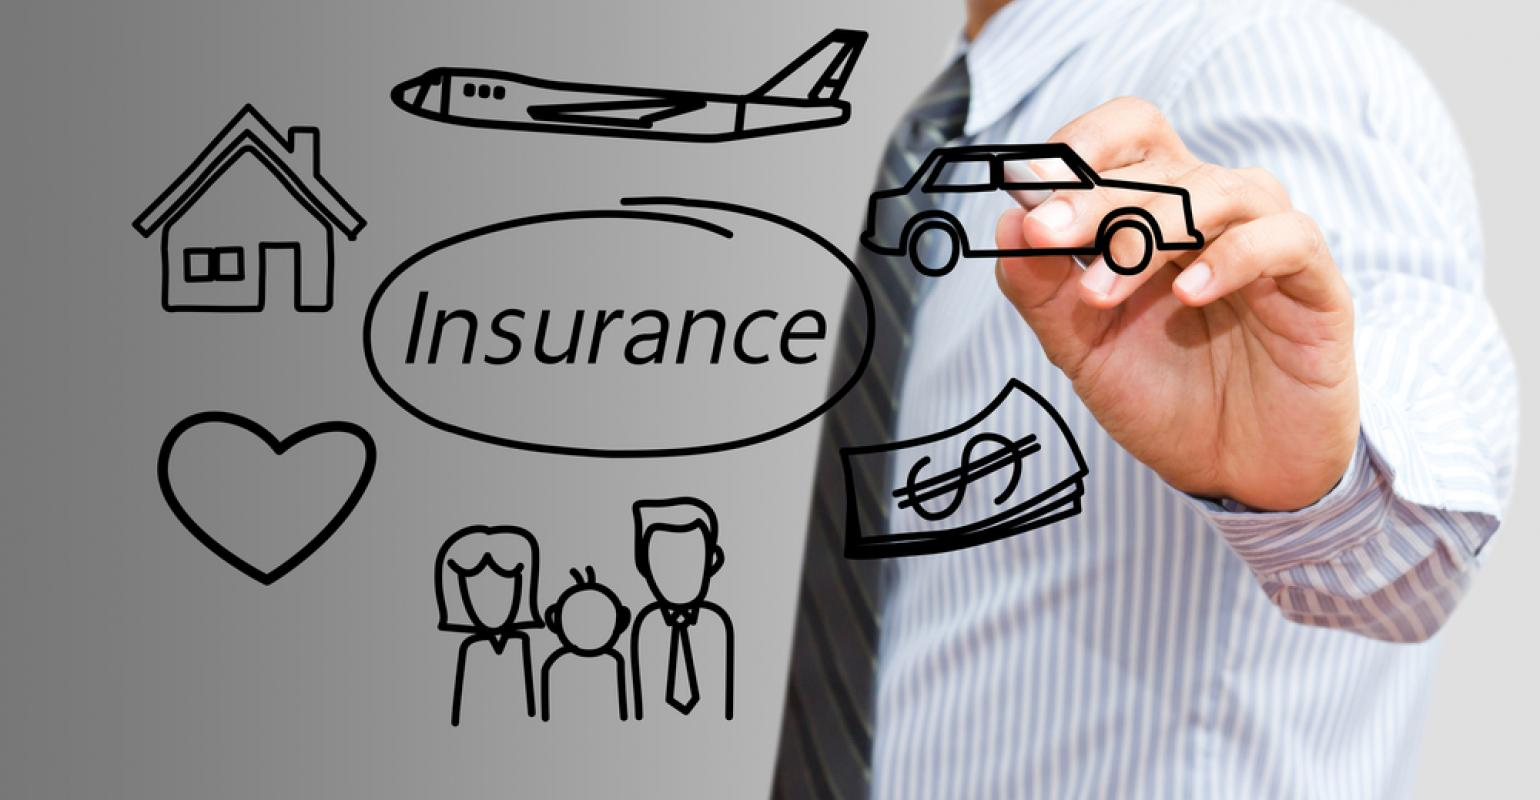 ACORD Certificates of Insurance - What Certificate Holders and Providers Need to Know